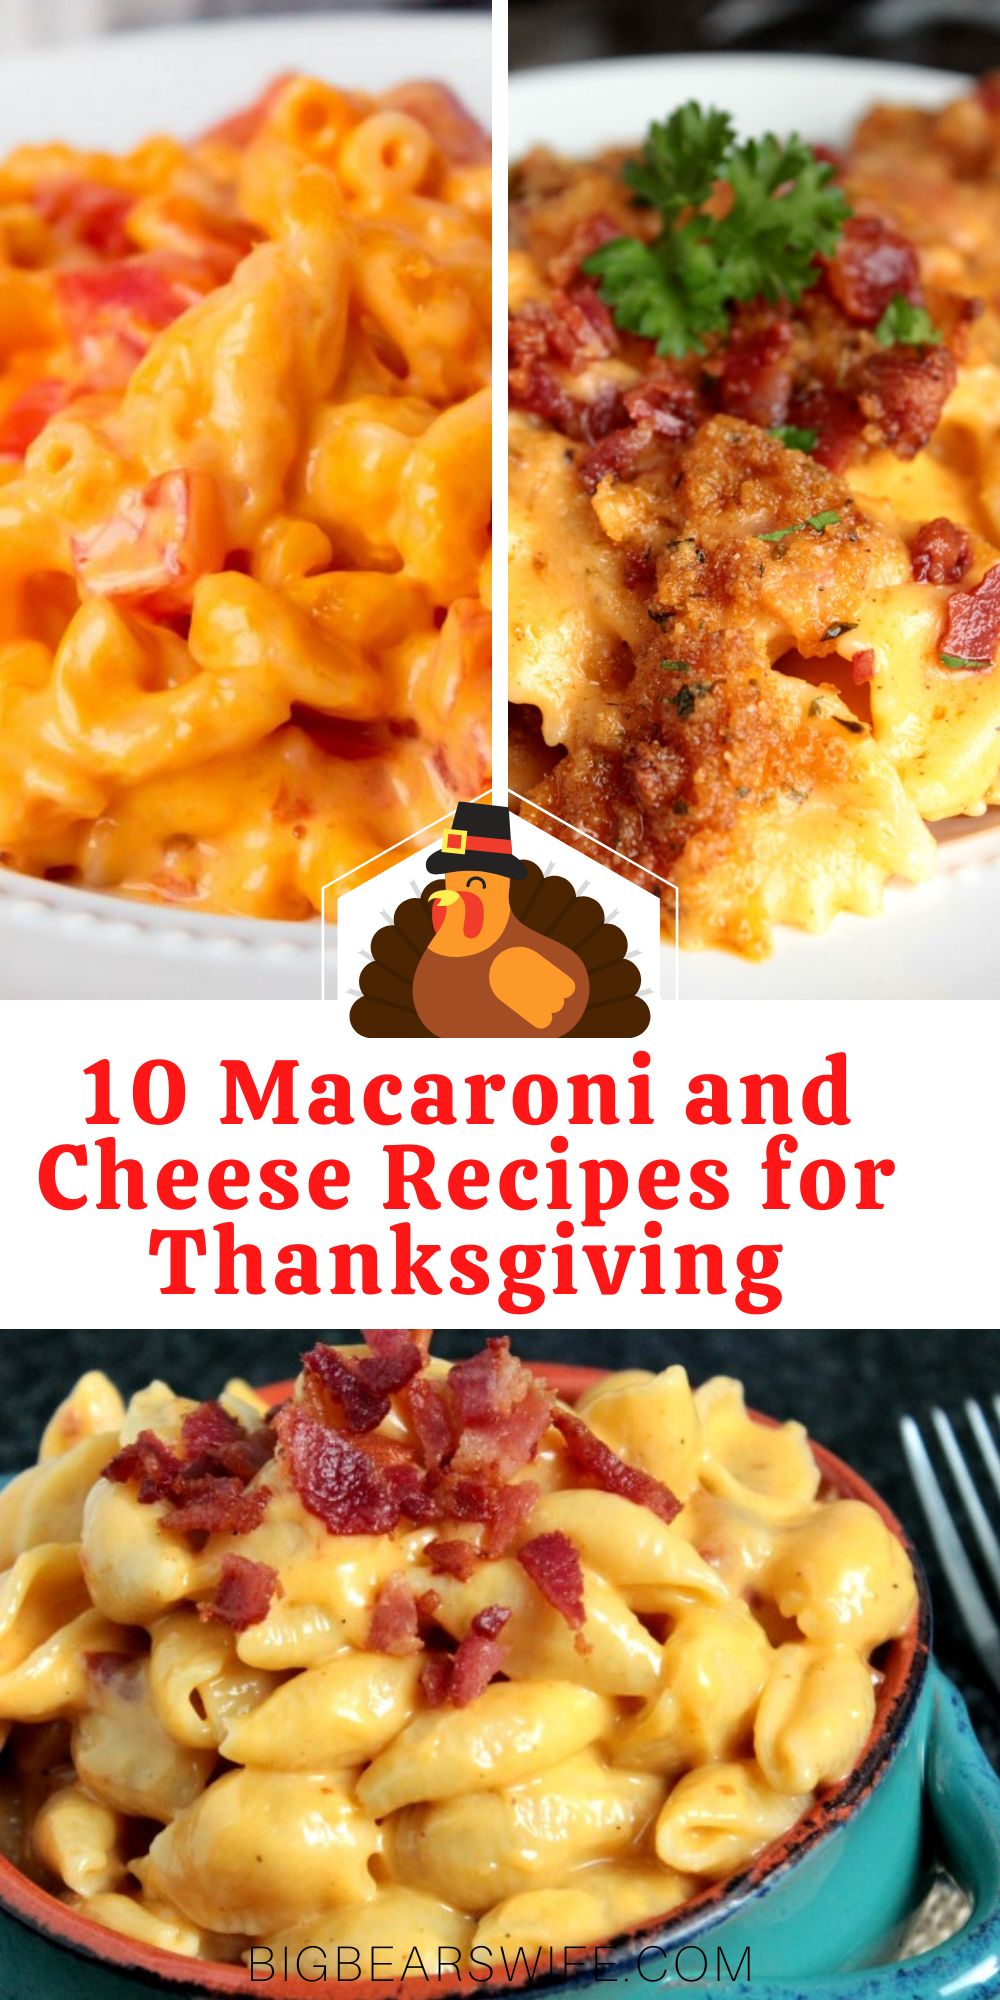 If you love Macaroni and Cheese then you know it has to be on the table at Thanksgiving! Here are 10 Macaroni and Cheese Recipes for Thanksgiving that you're going to love!   via @bigbearswife